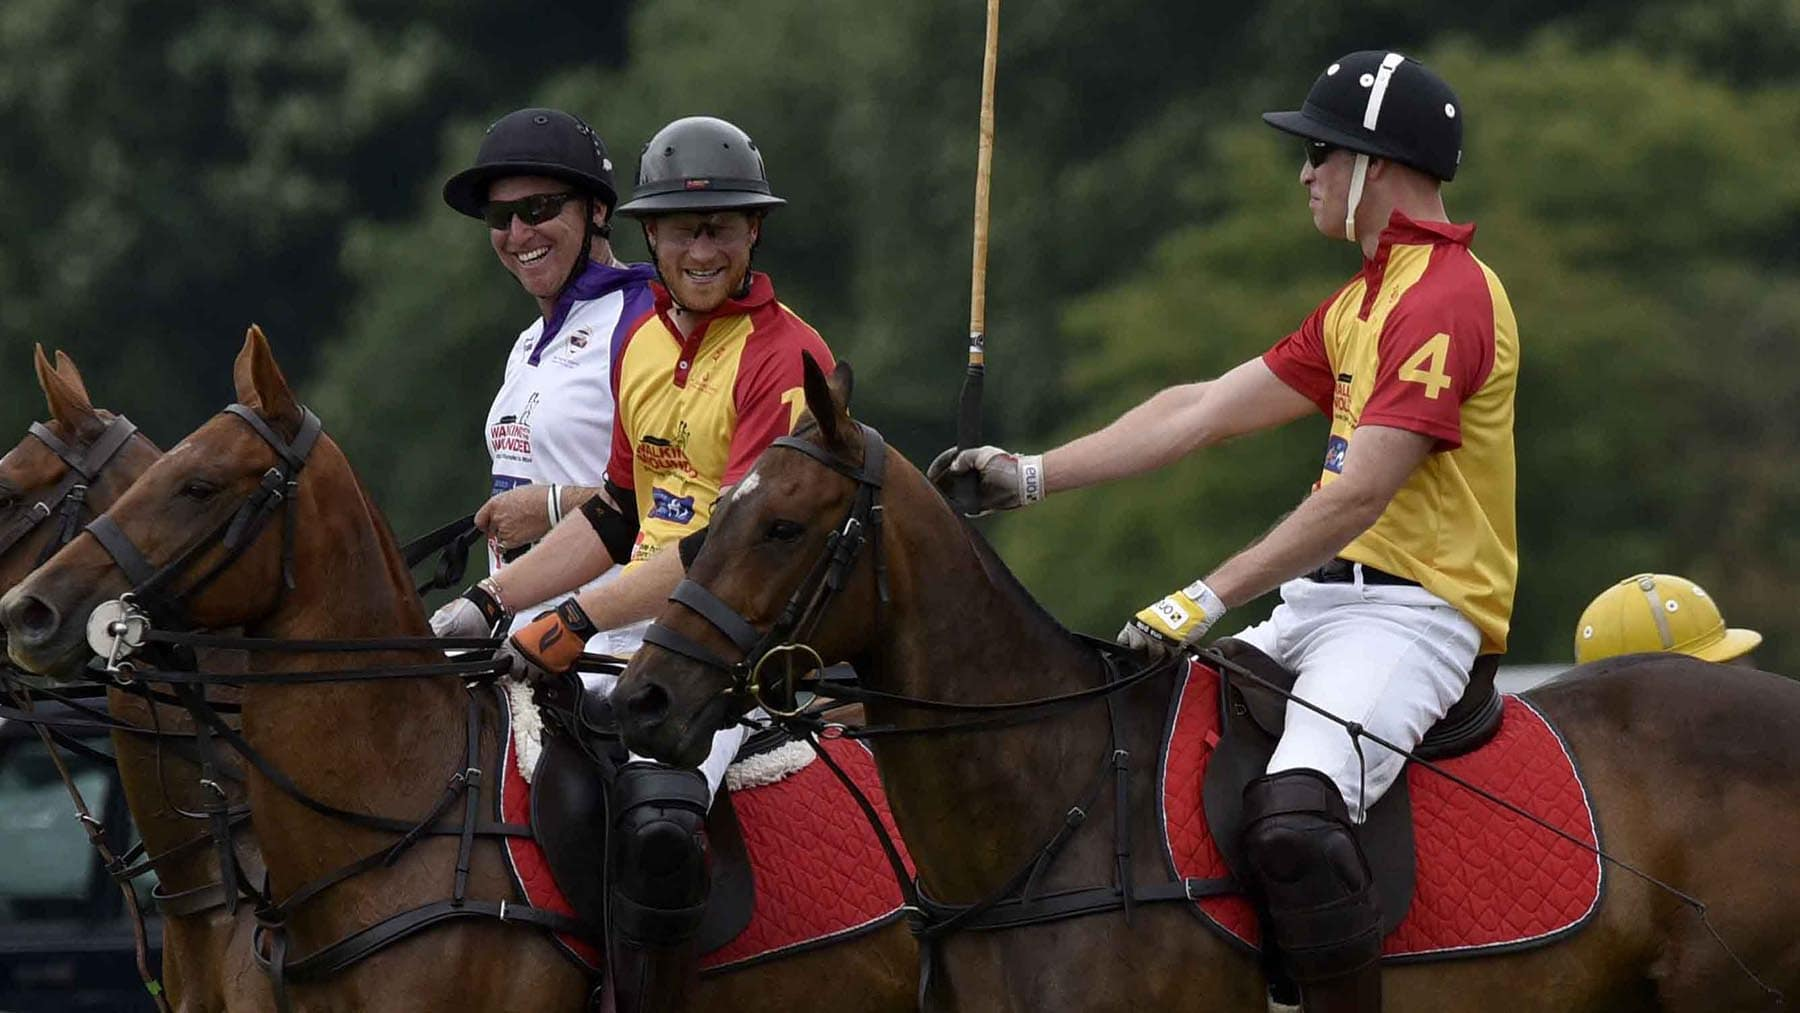 Prince William Polo. Commercial & Corporate Photography from © Neil Munns Photography